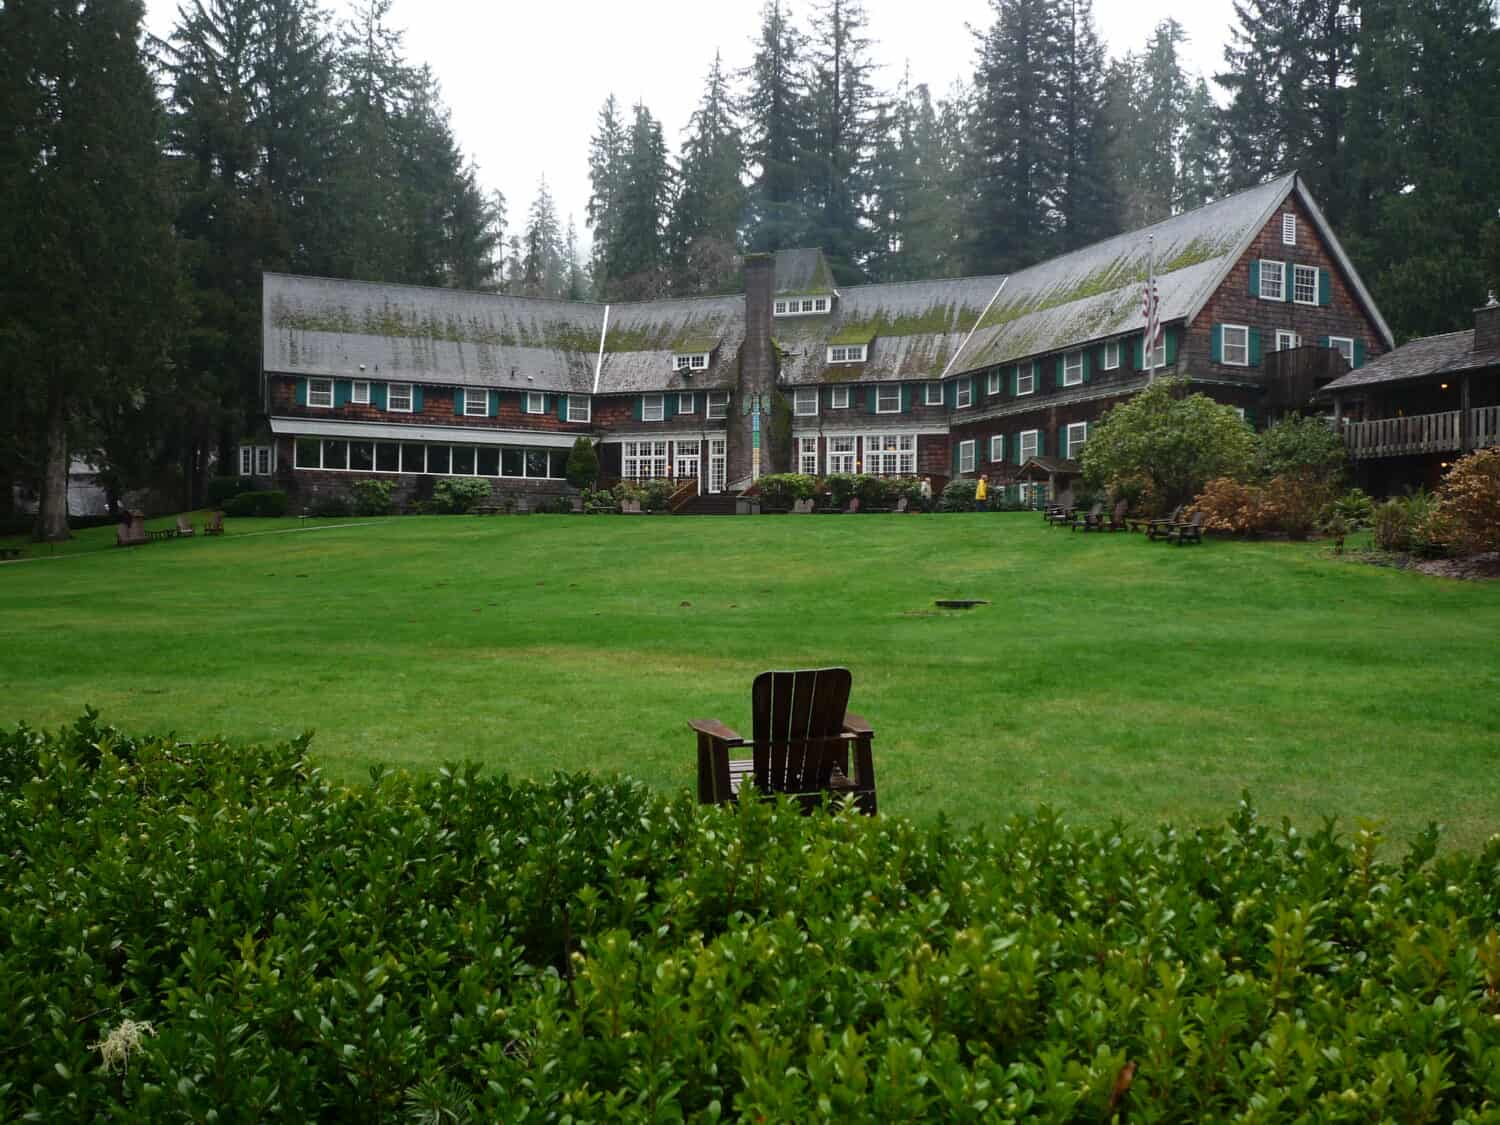 Lake Quinault Lodge - Olympic National Park, Washington - TheMandagies.com